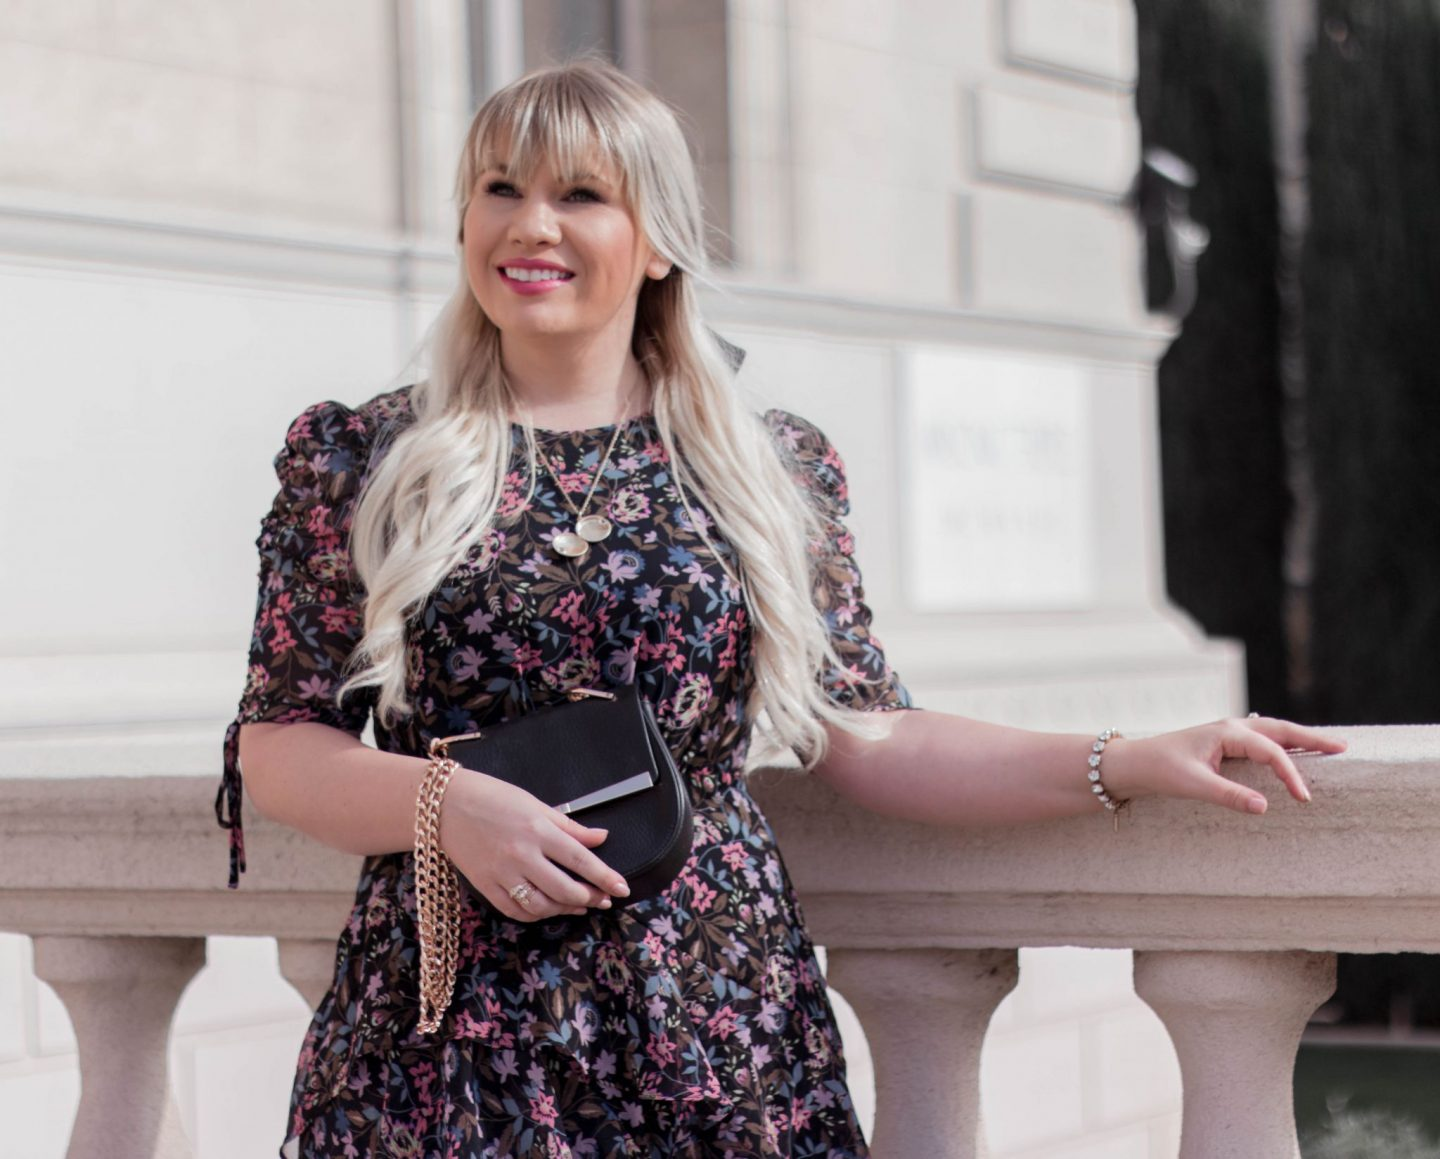 Fashion Blogger Elizabeth Hugen of Lizzie in Lace styles a black floral midi dress with a black saddle bag